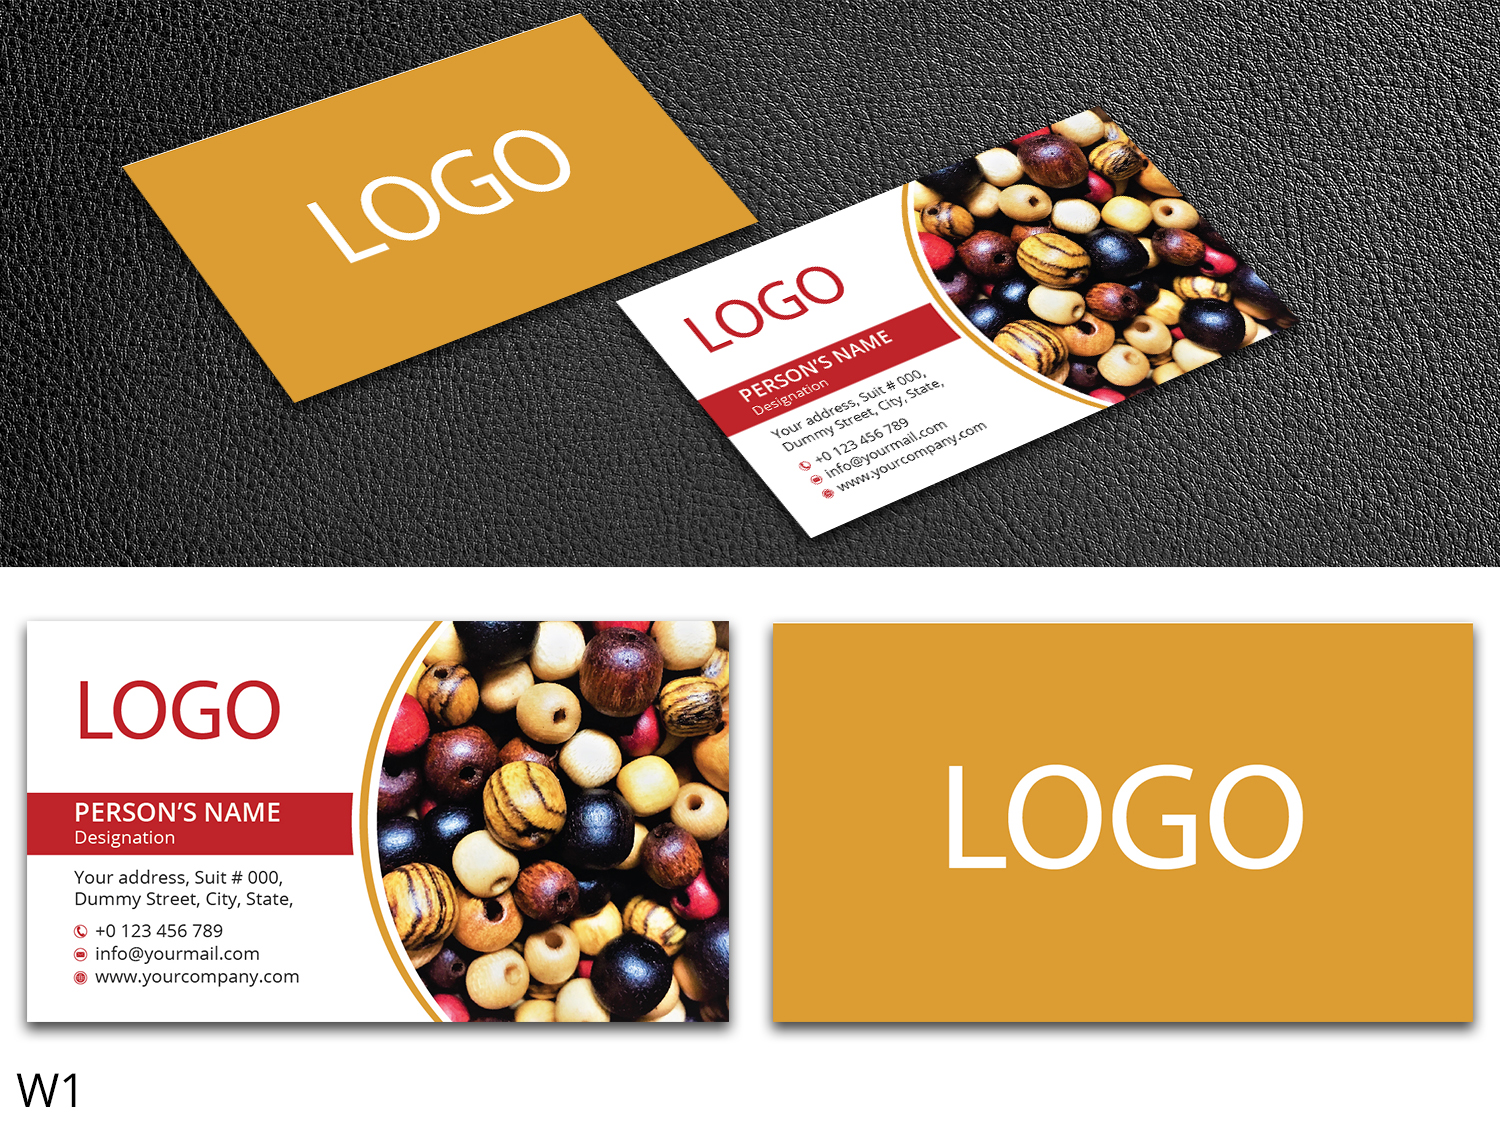 Colorful, Playful Business Card Design for a Company by